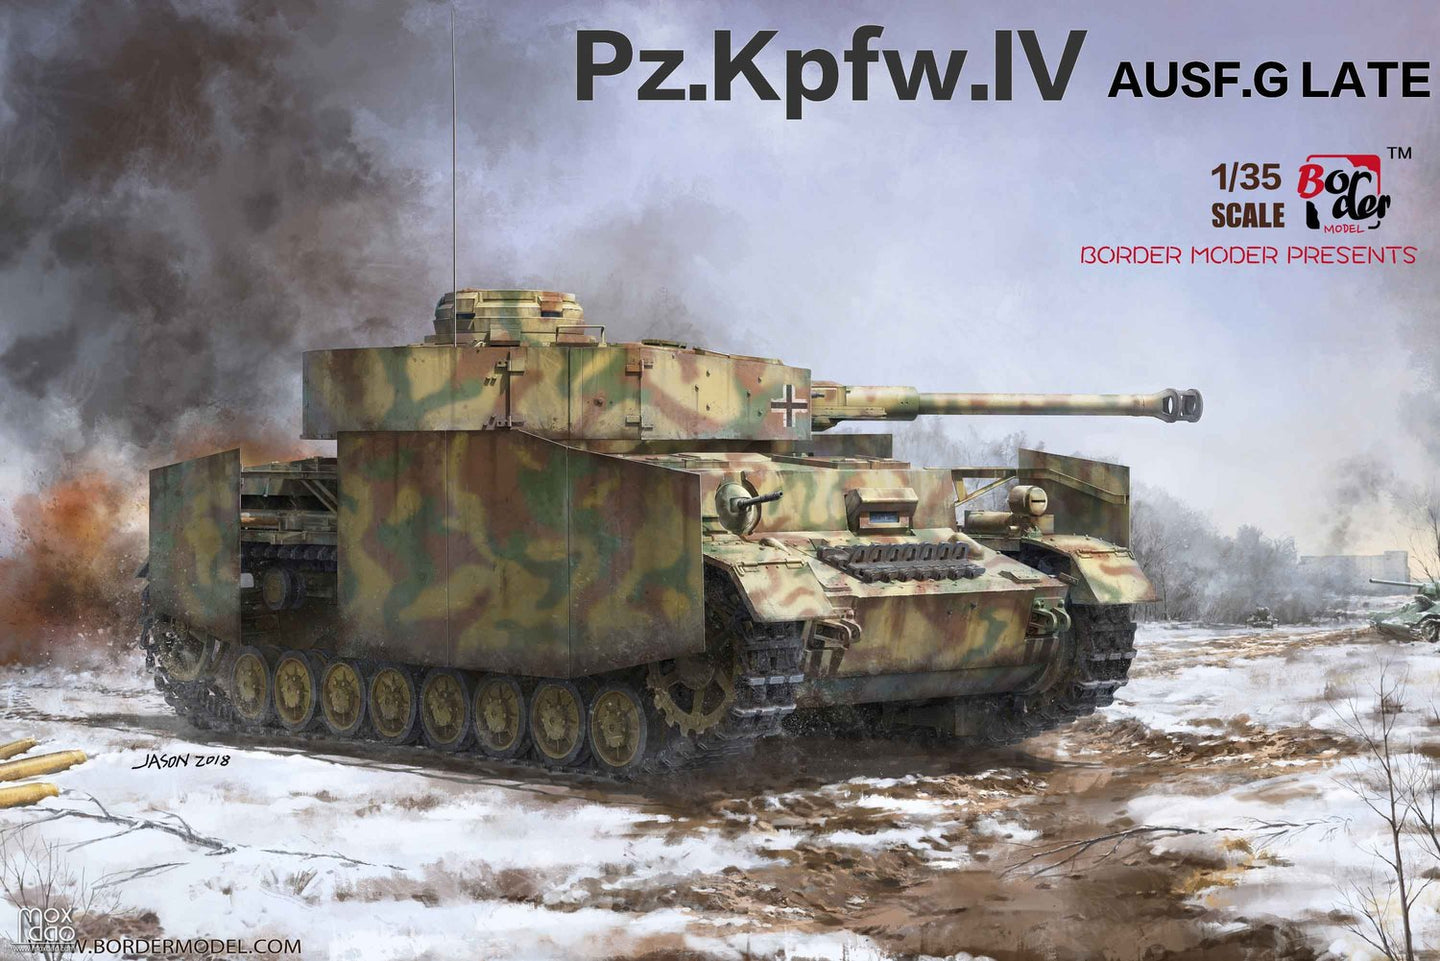 Border 1/35 German PzKpfw IV Ausf. G 2-in-1 Kit BT-001